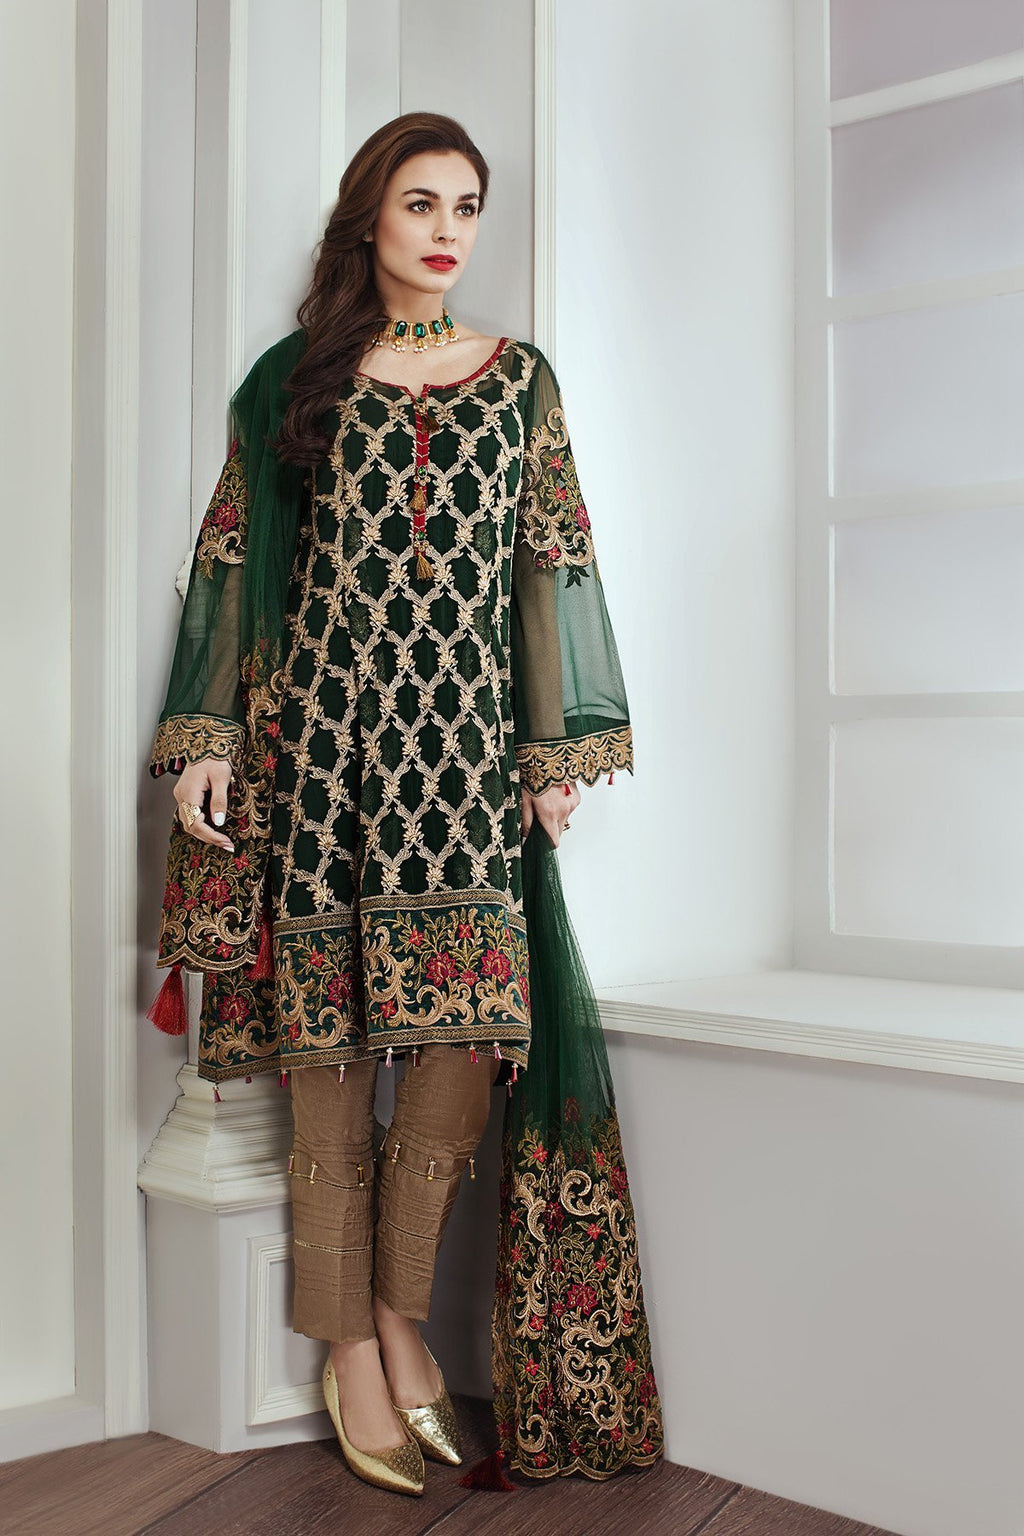 Jazmin designer suit Emerald Dew - Green colour embroidered chiffon kameez, Net dupatta and gold dyed salwar